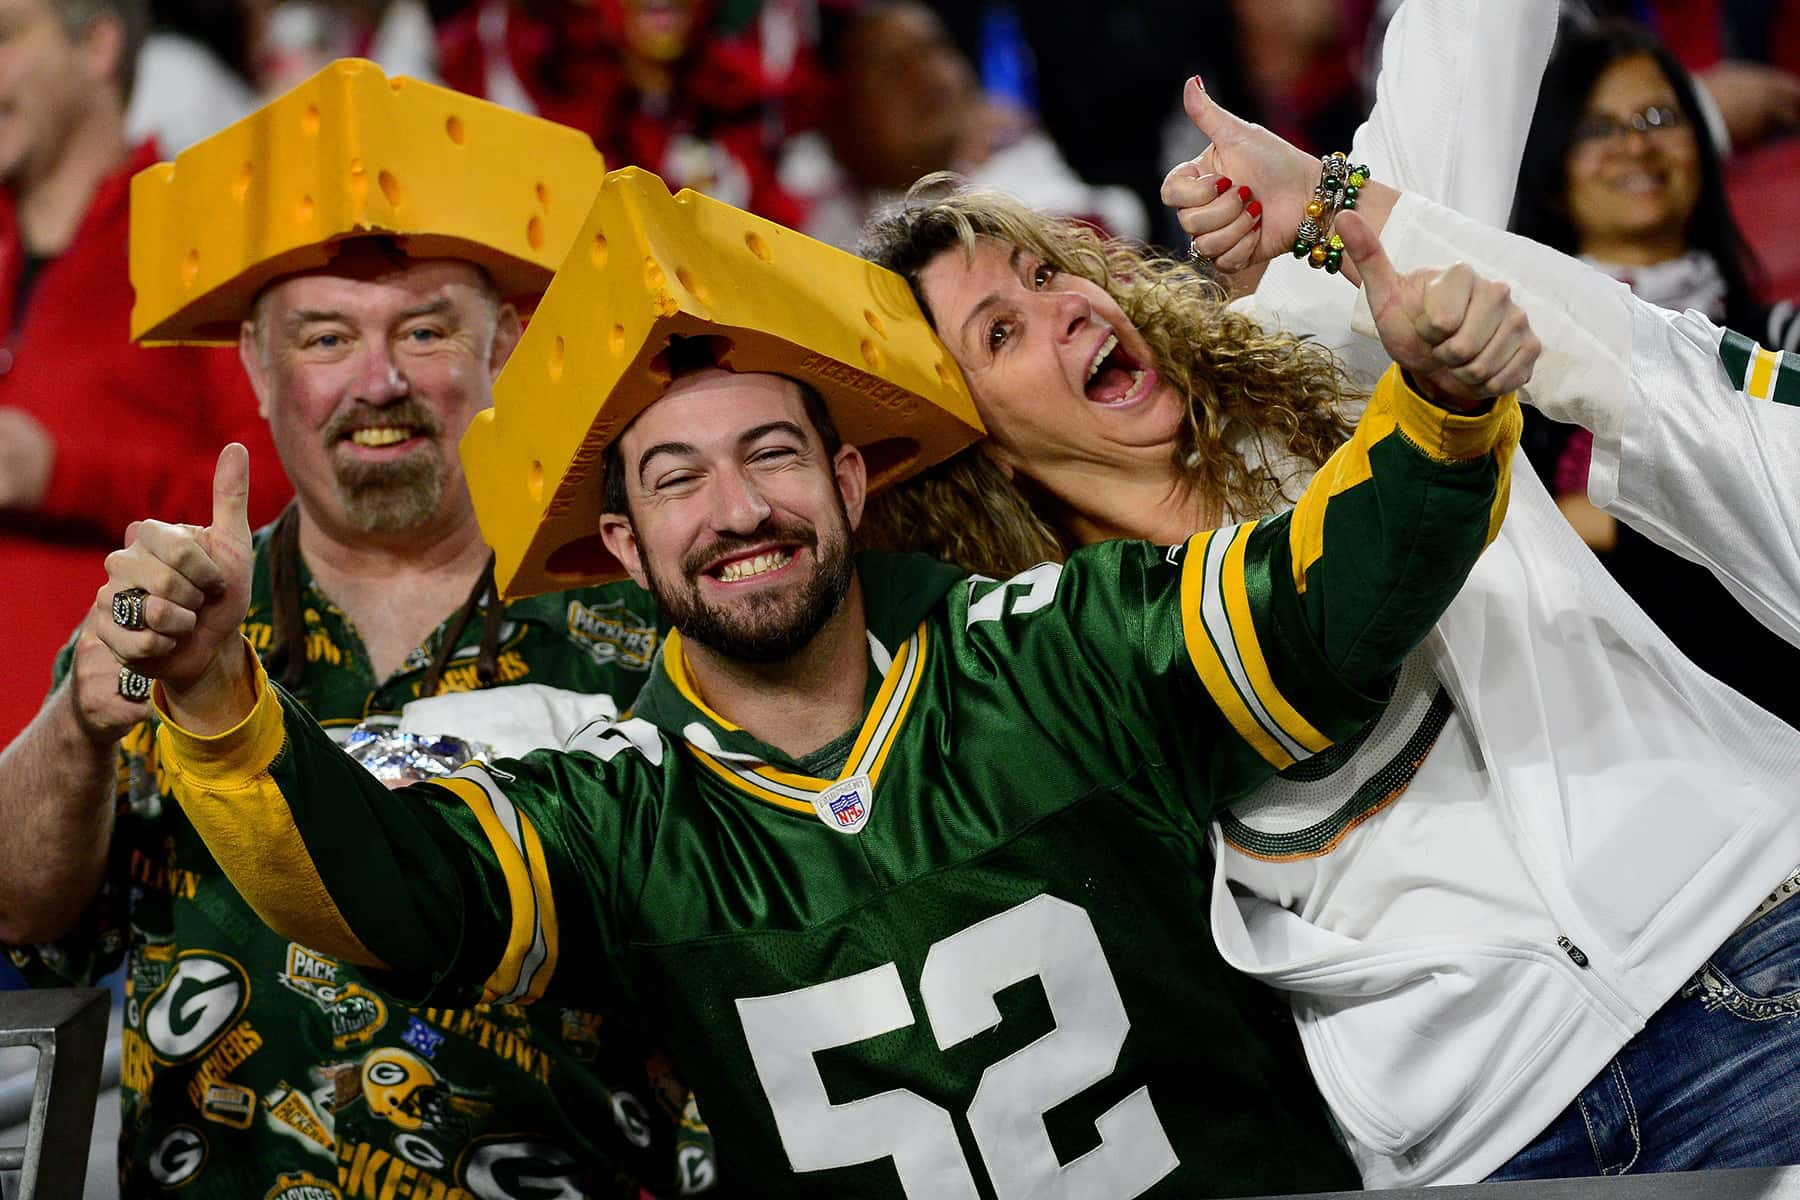 For cheeseheads